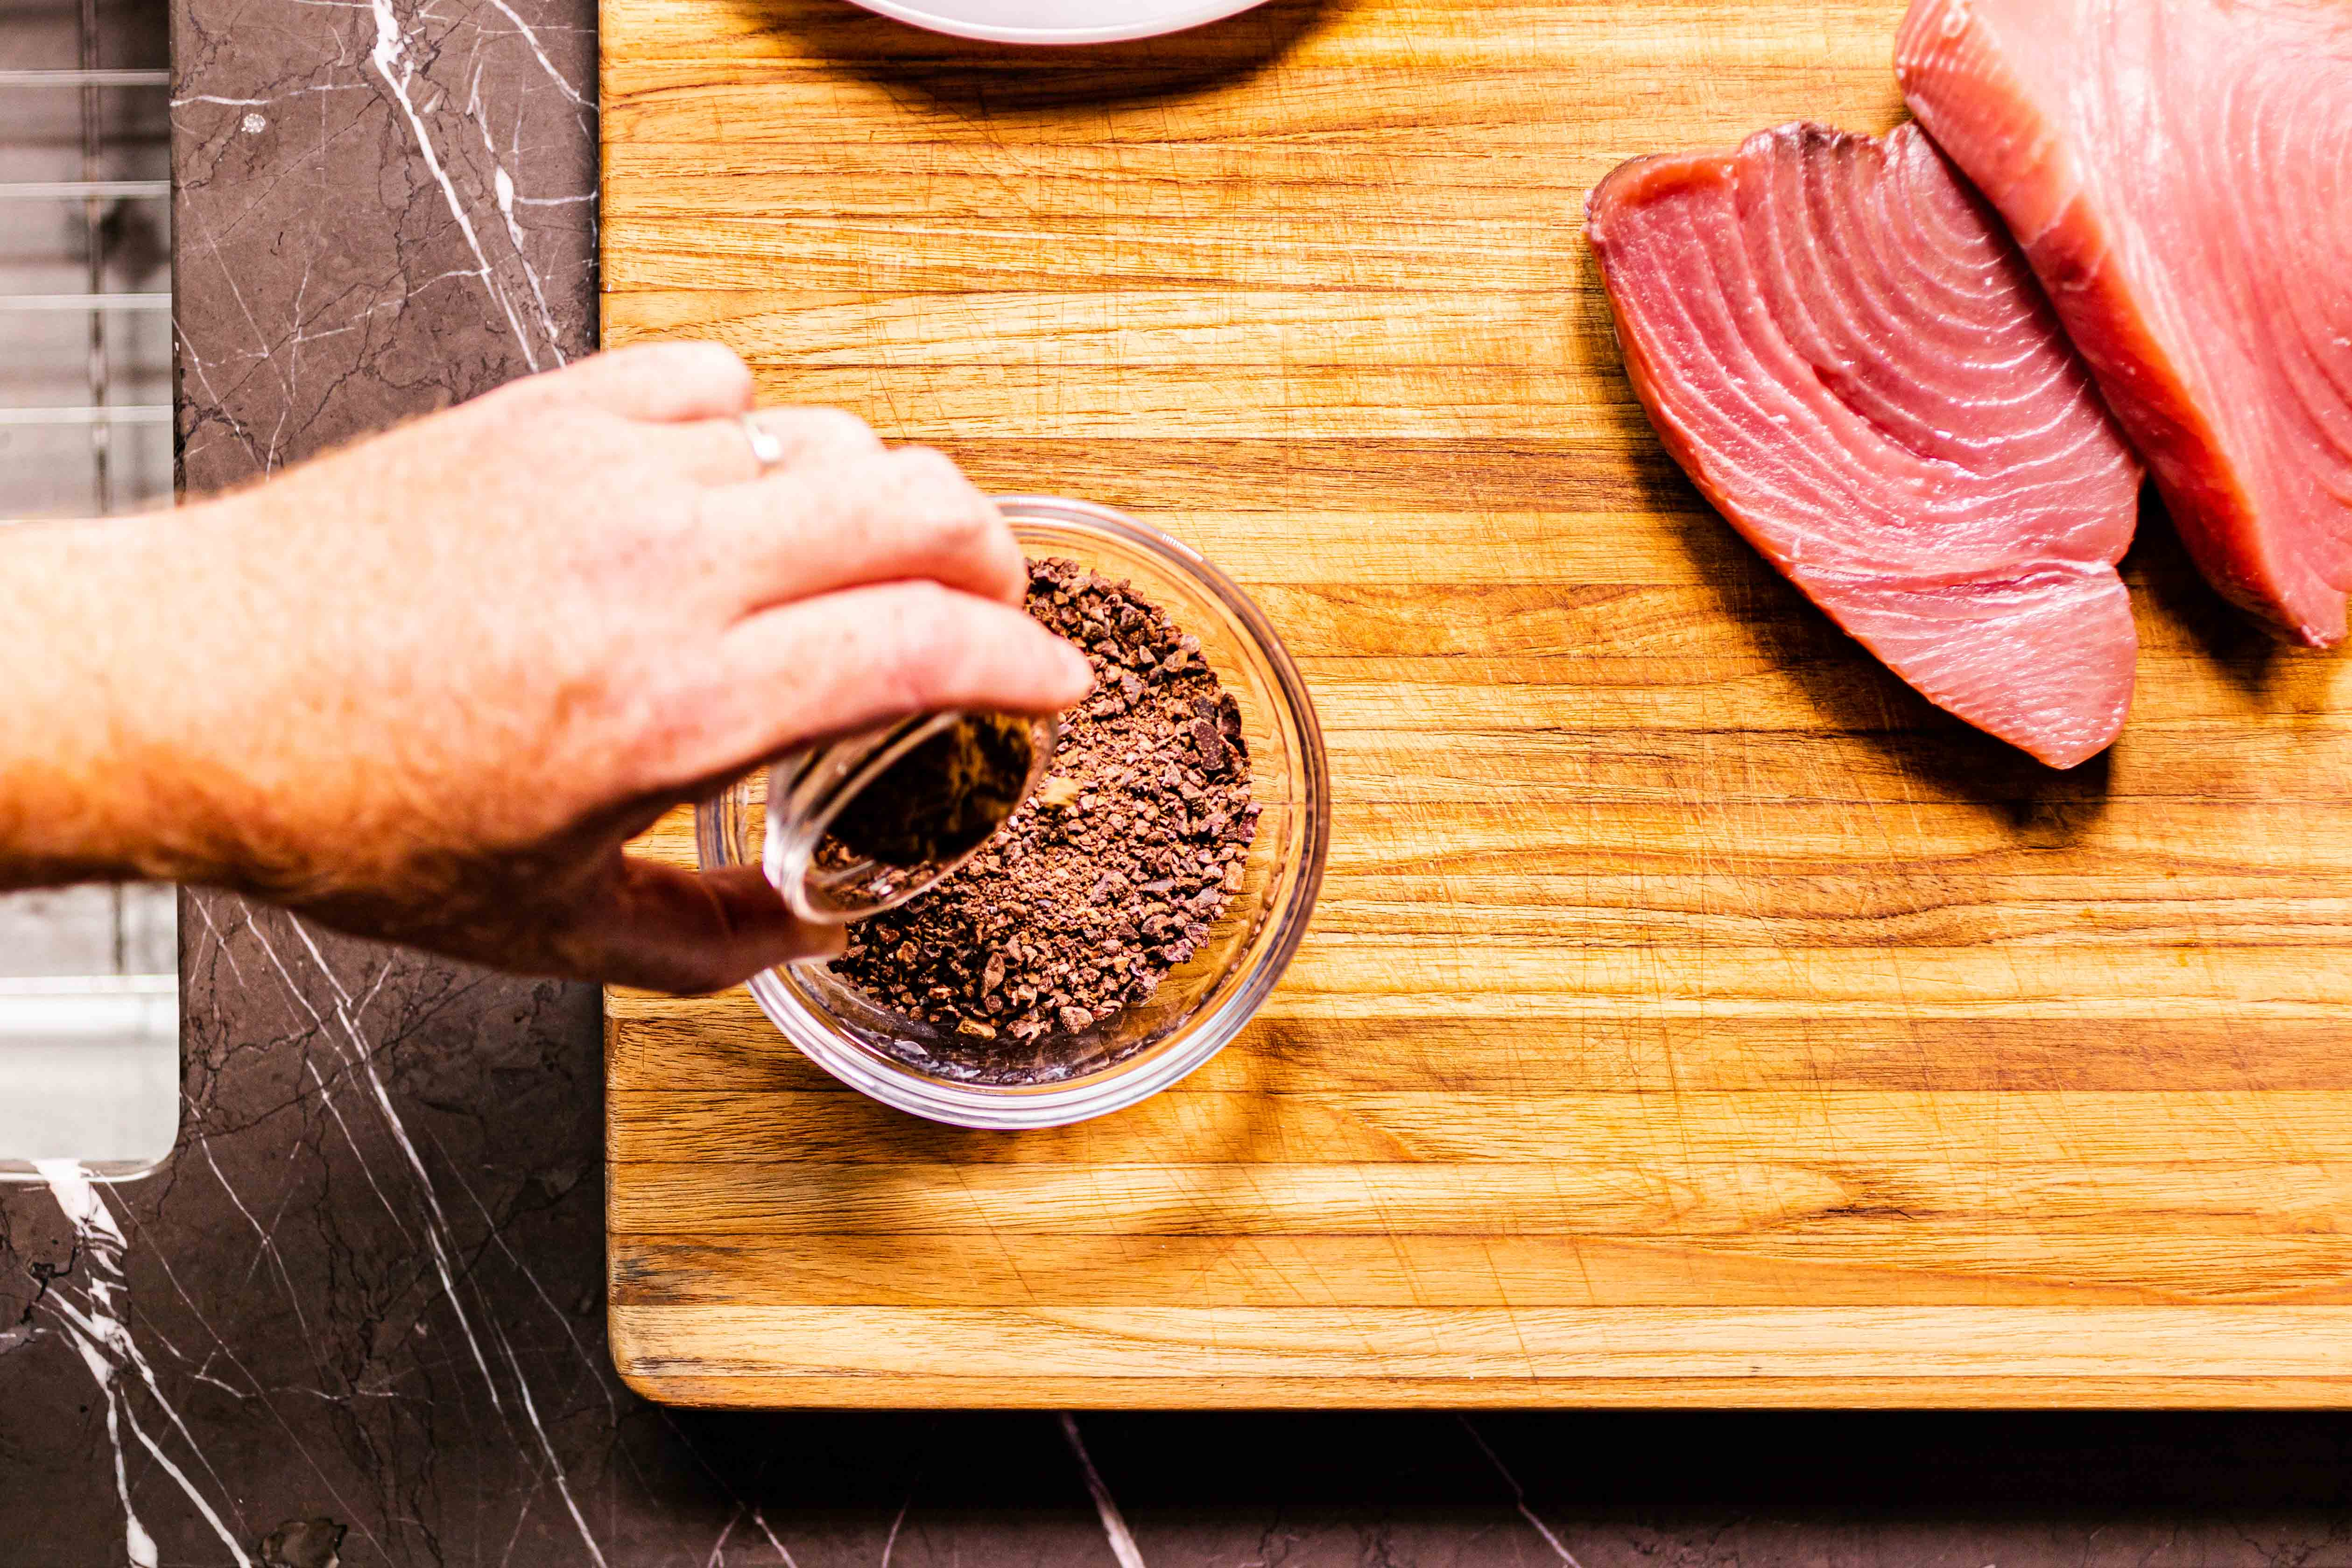 How To Cook Tuna Steak Thermal Tips For The Other Red Meat